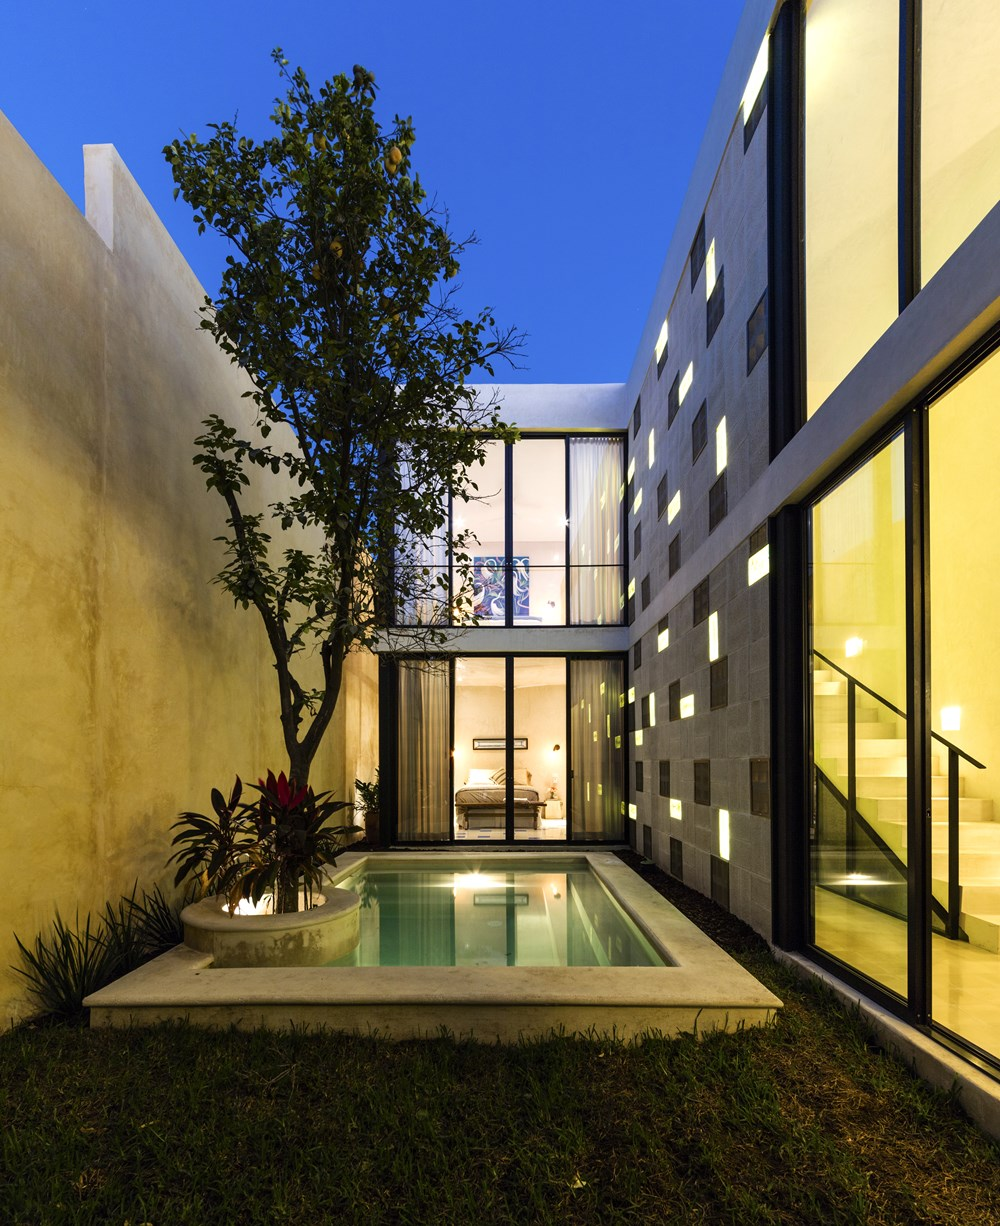 RC 80 House by Taller Estilo Arquitectura